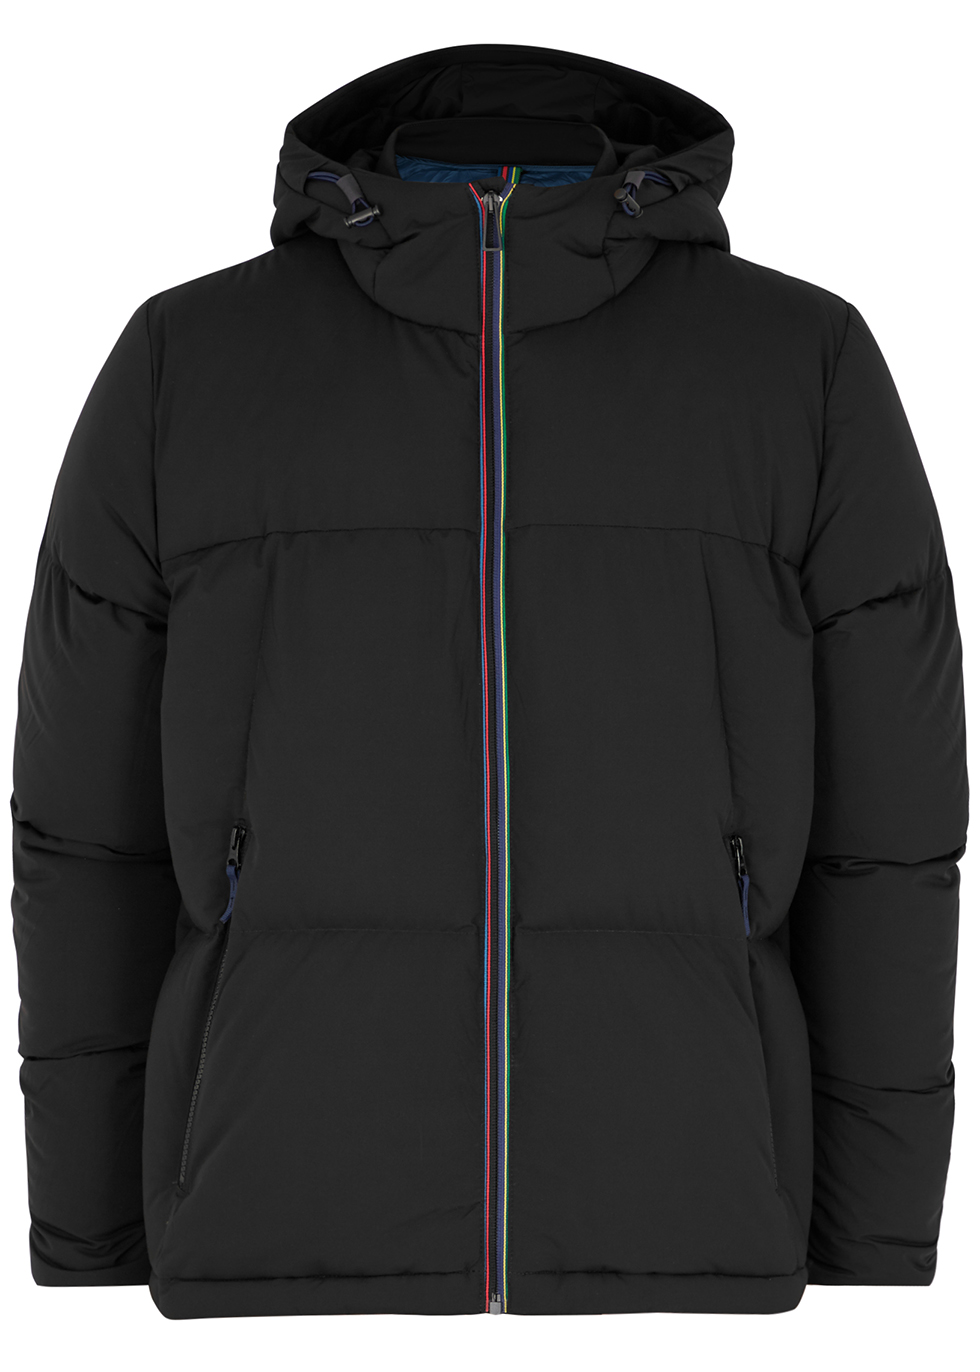 Black quilted hooded shell jacket